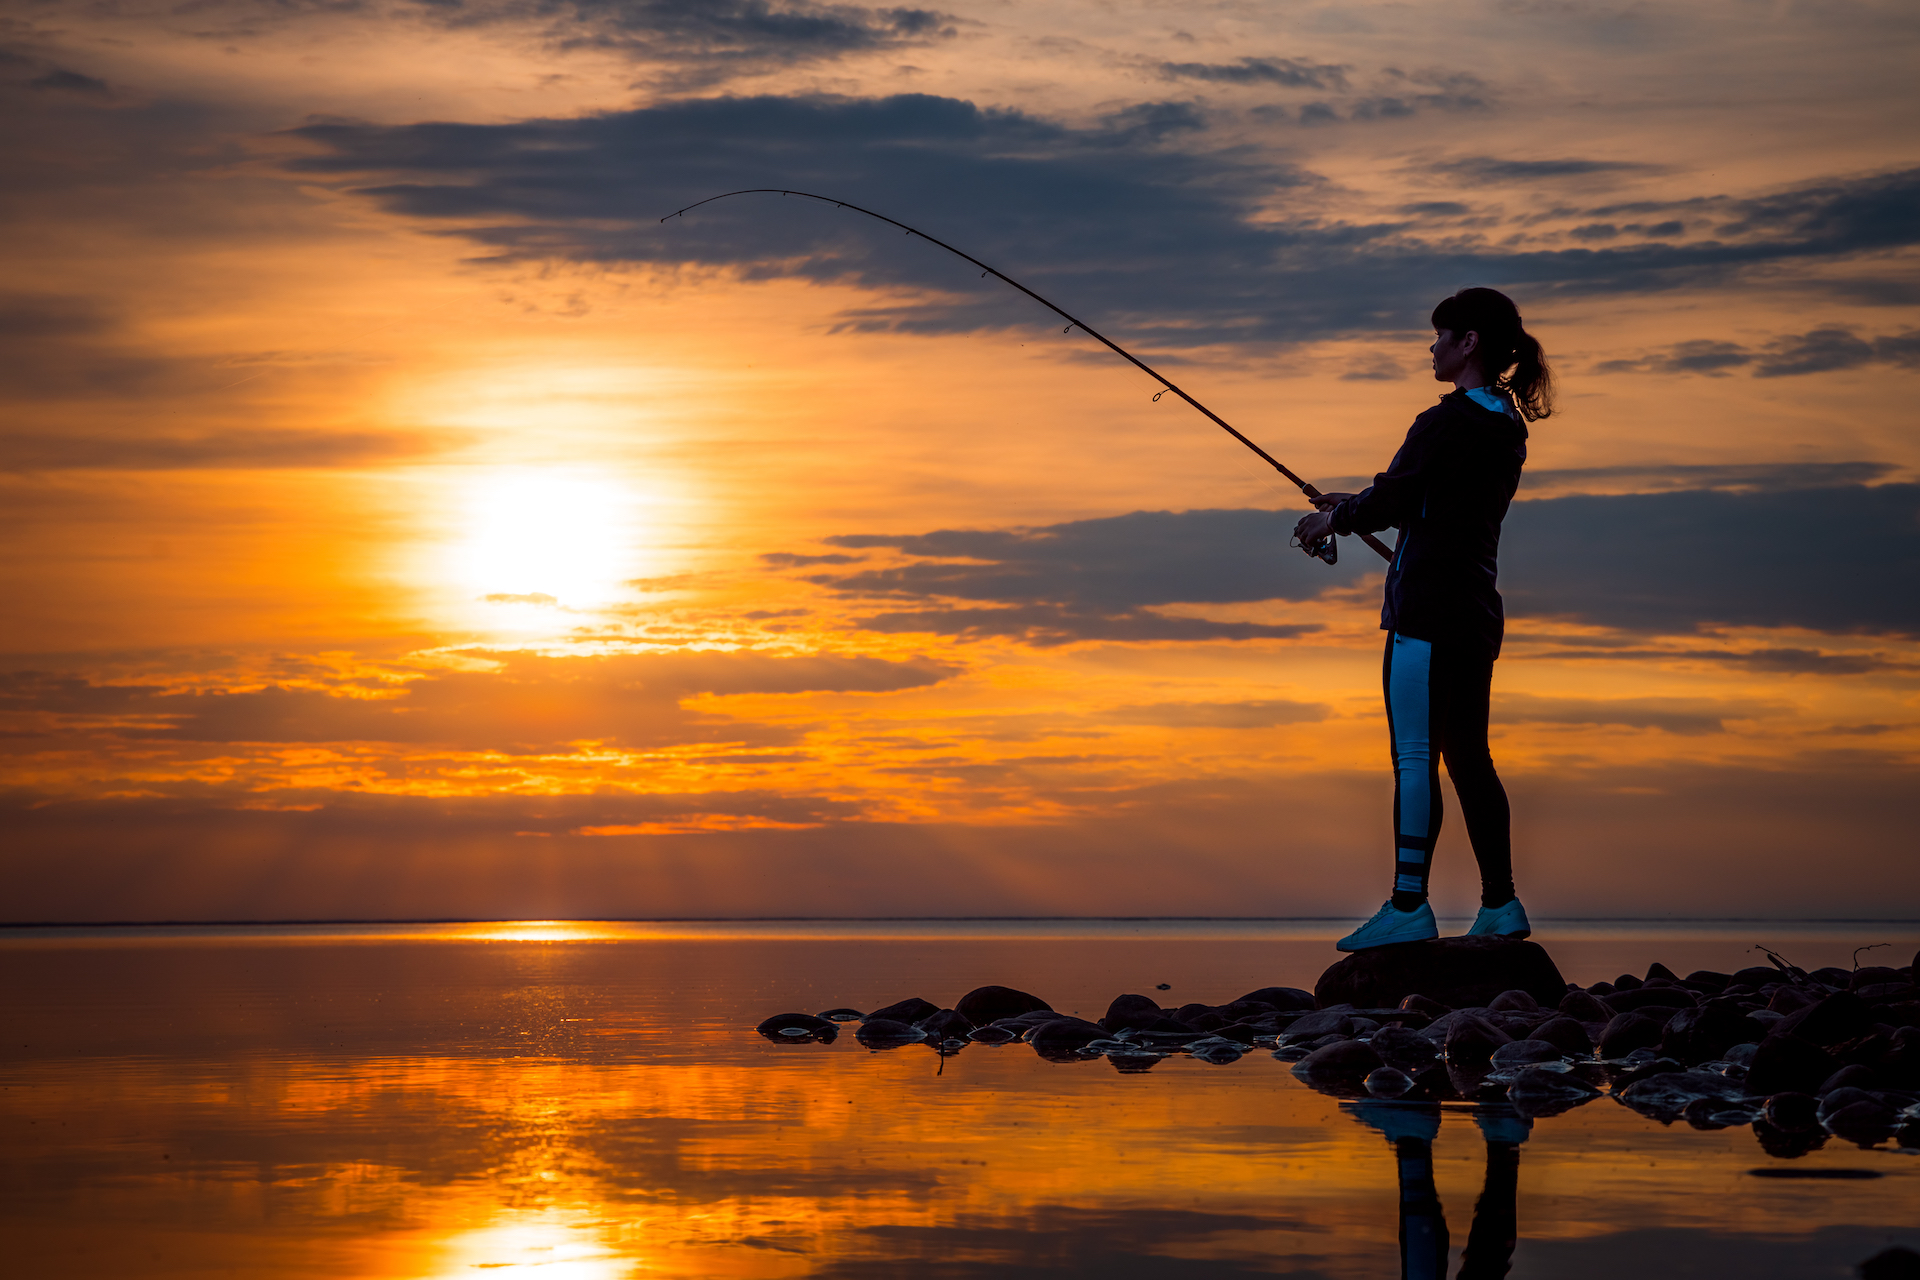 image of woman fishing at sunset from waterfront hotel